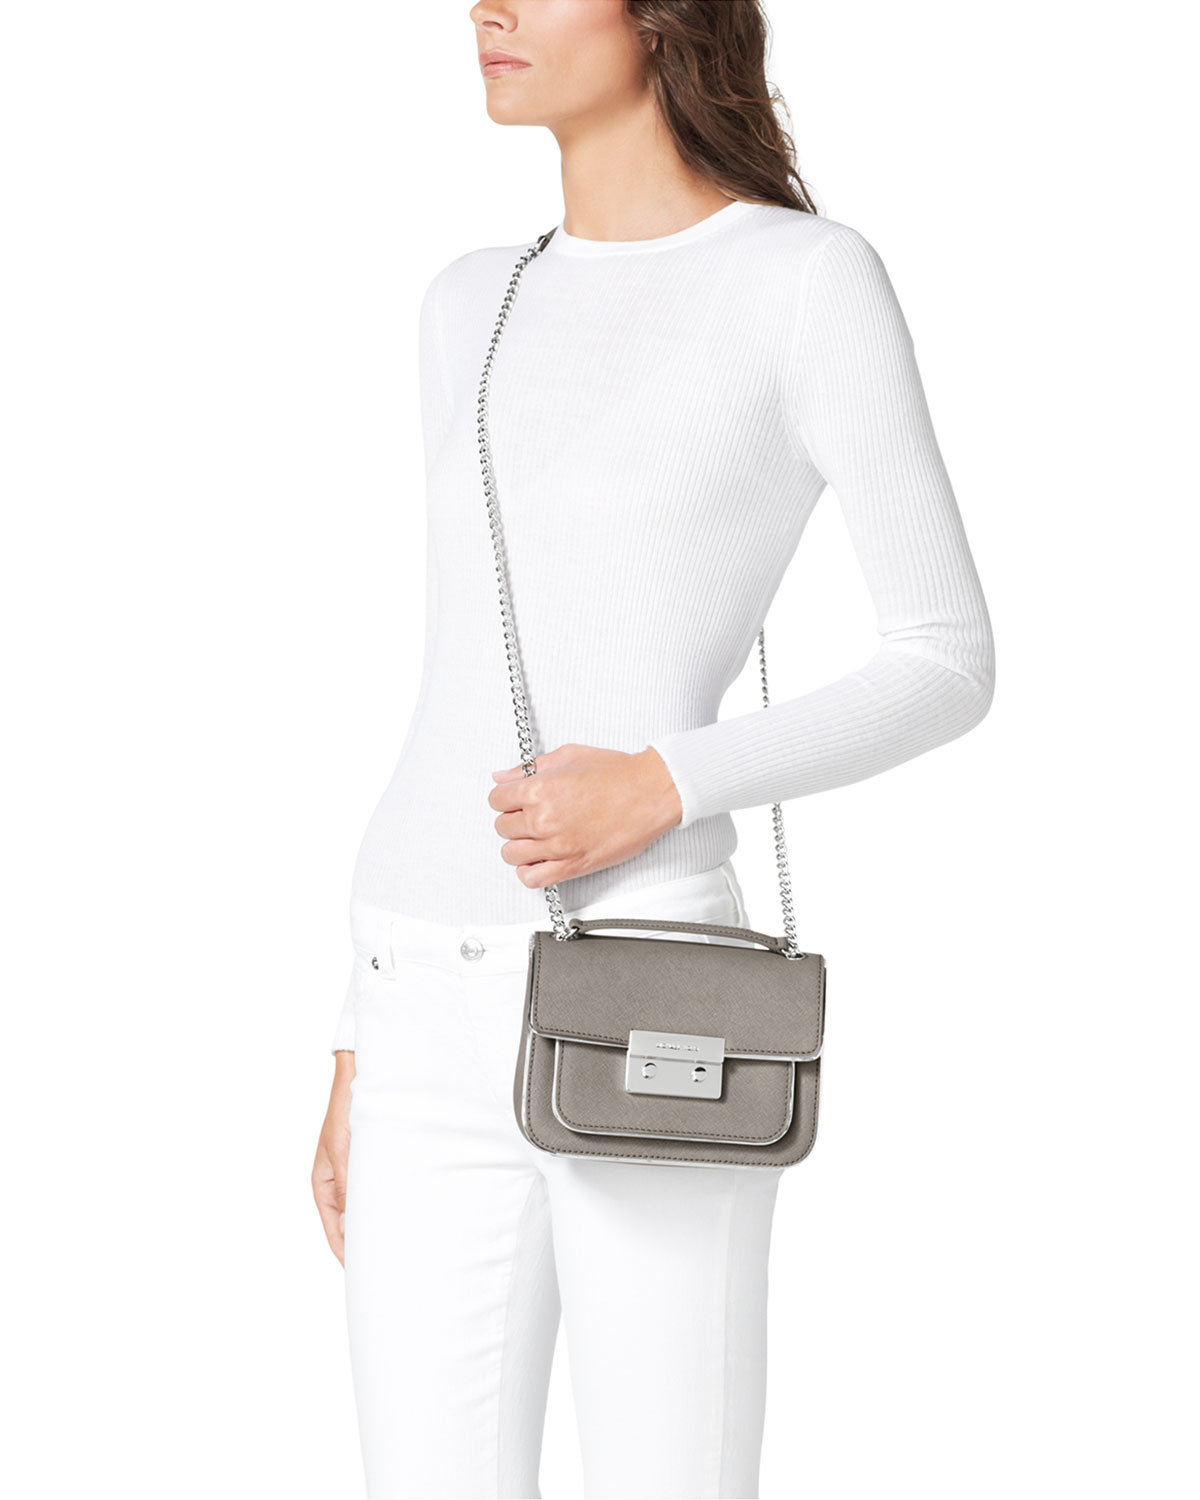 d63e4f19849f Gallery. Previously sold at: Neiman Marcus · Women's Michael By Michael  Kors Sloan